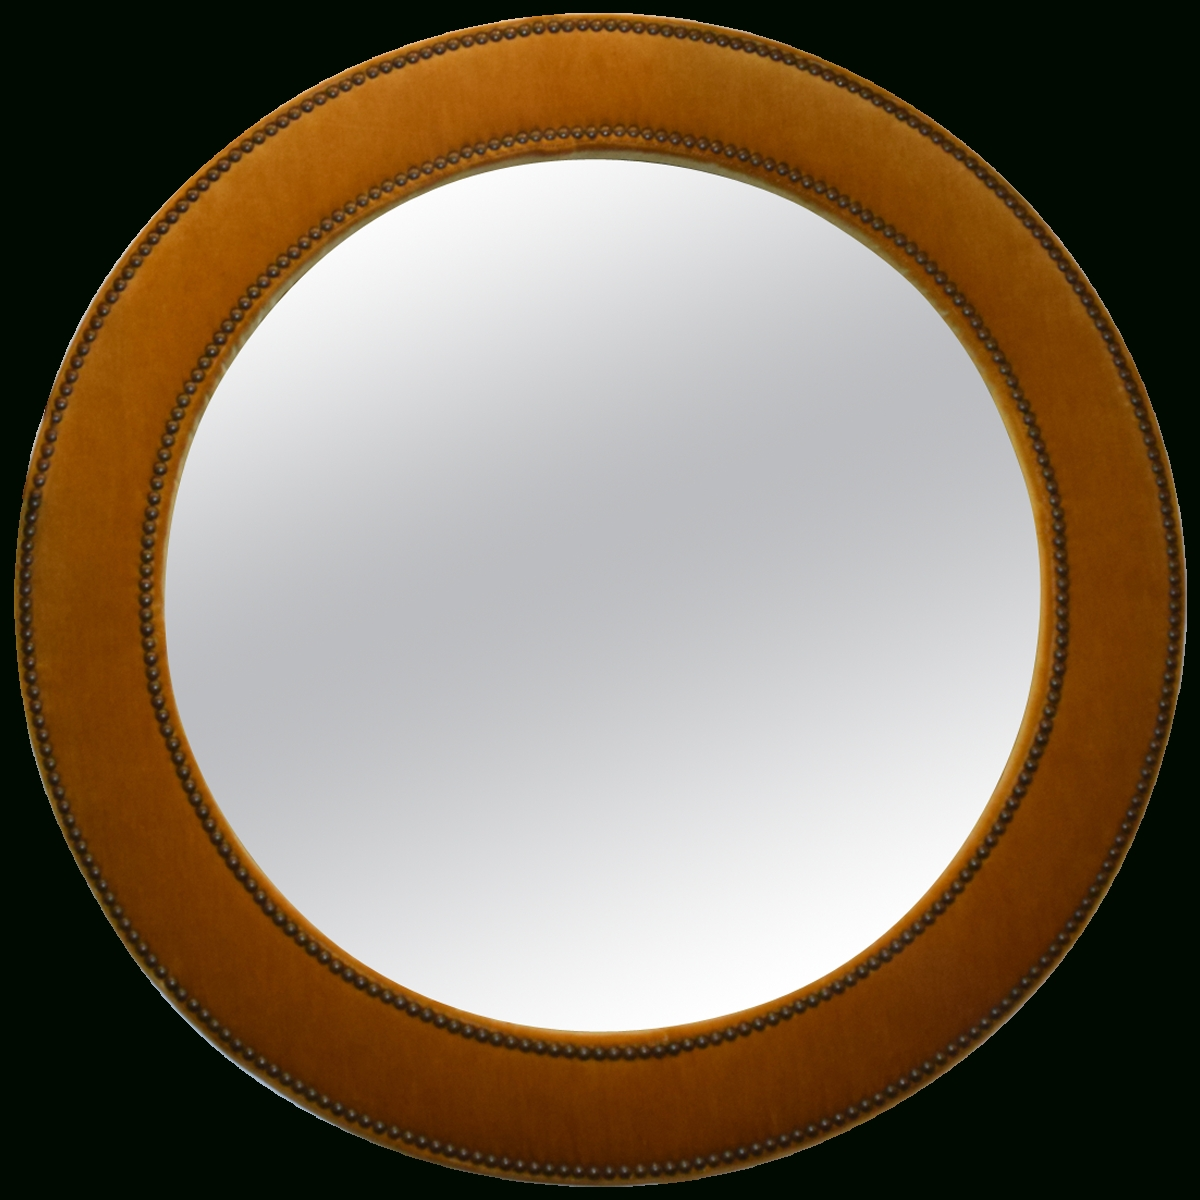 Viyet – Designer Furniture – Accessories – Mitchell Gold + Bob Within Antique Round Mirror (Image 20 of 20)